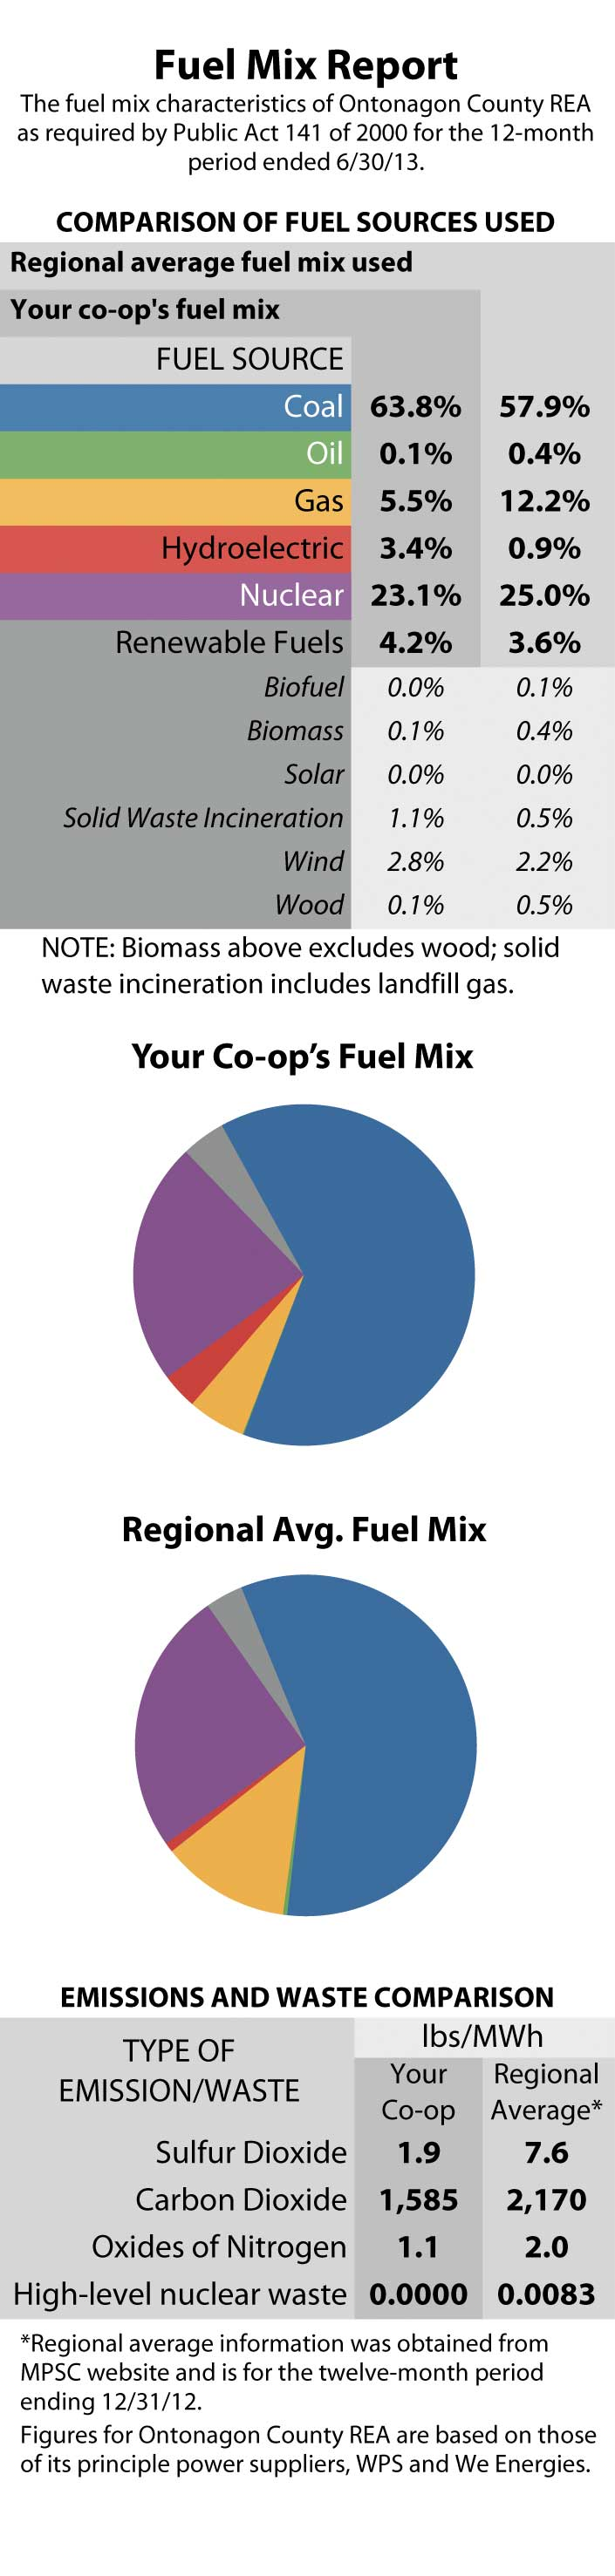 fuel-mix-report showing co-op energy usage compared to the region